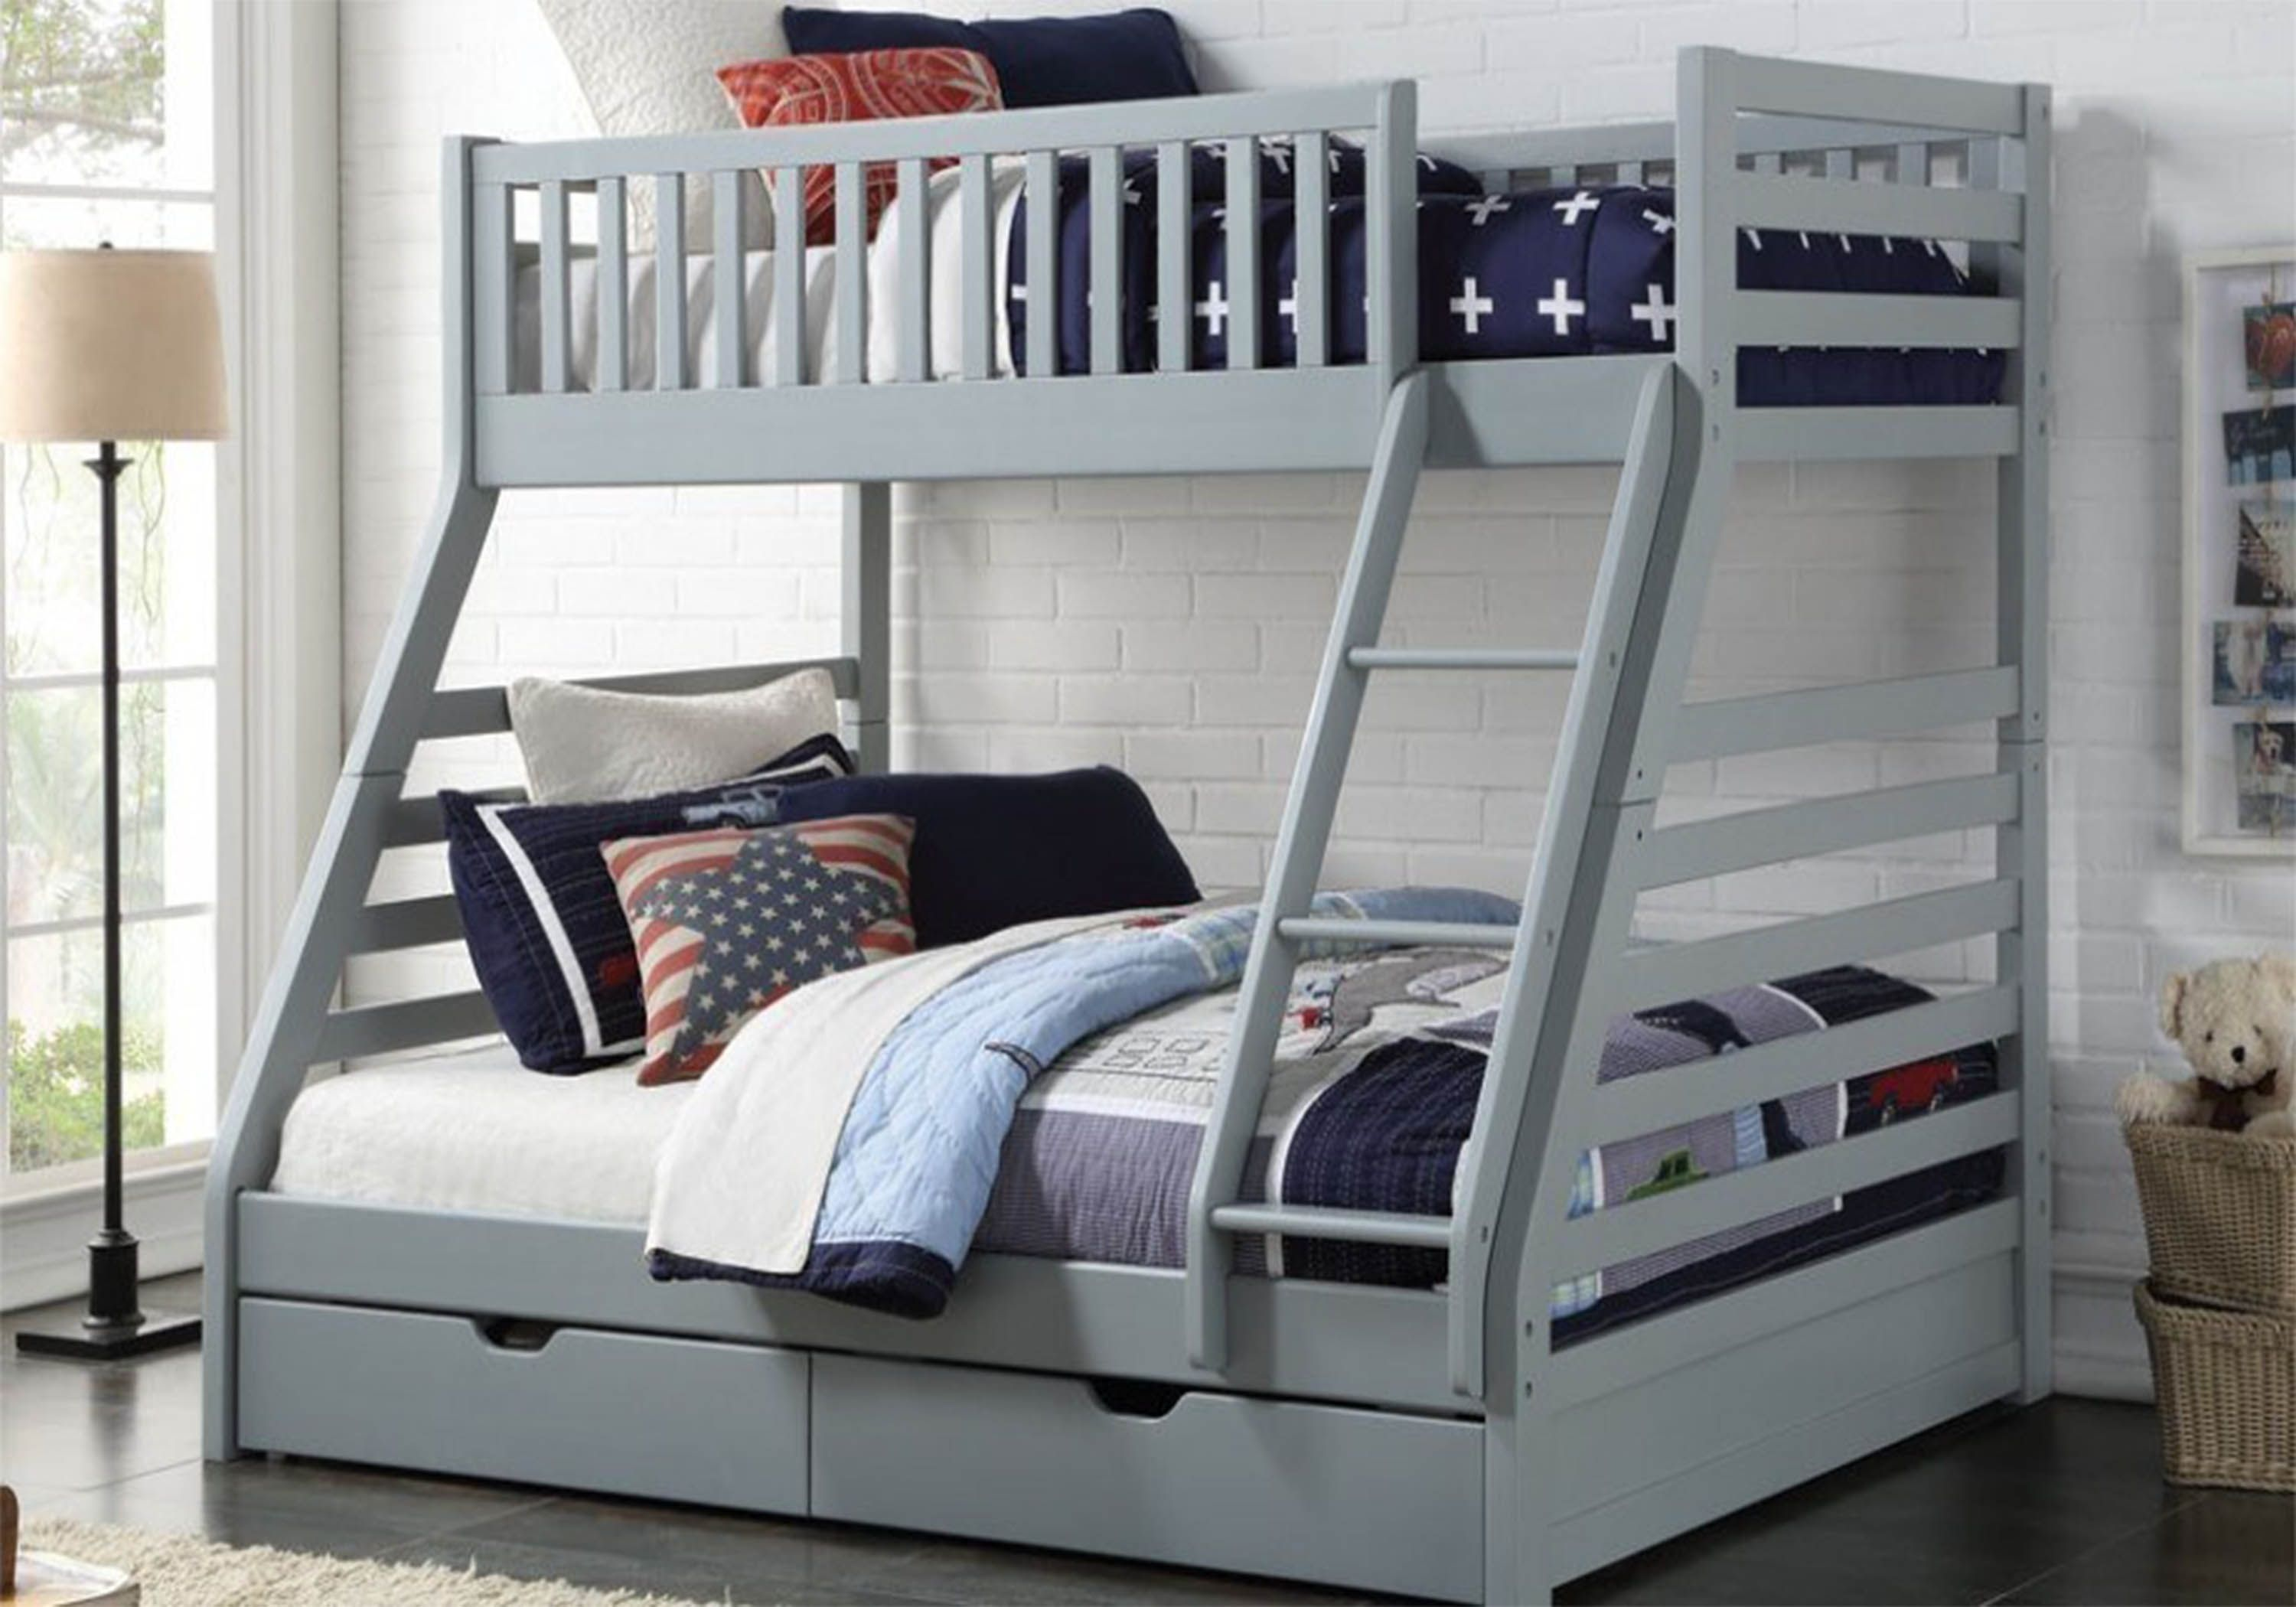 Know About The Types Of Triple Bunk Beds For Kids